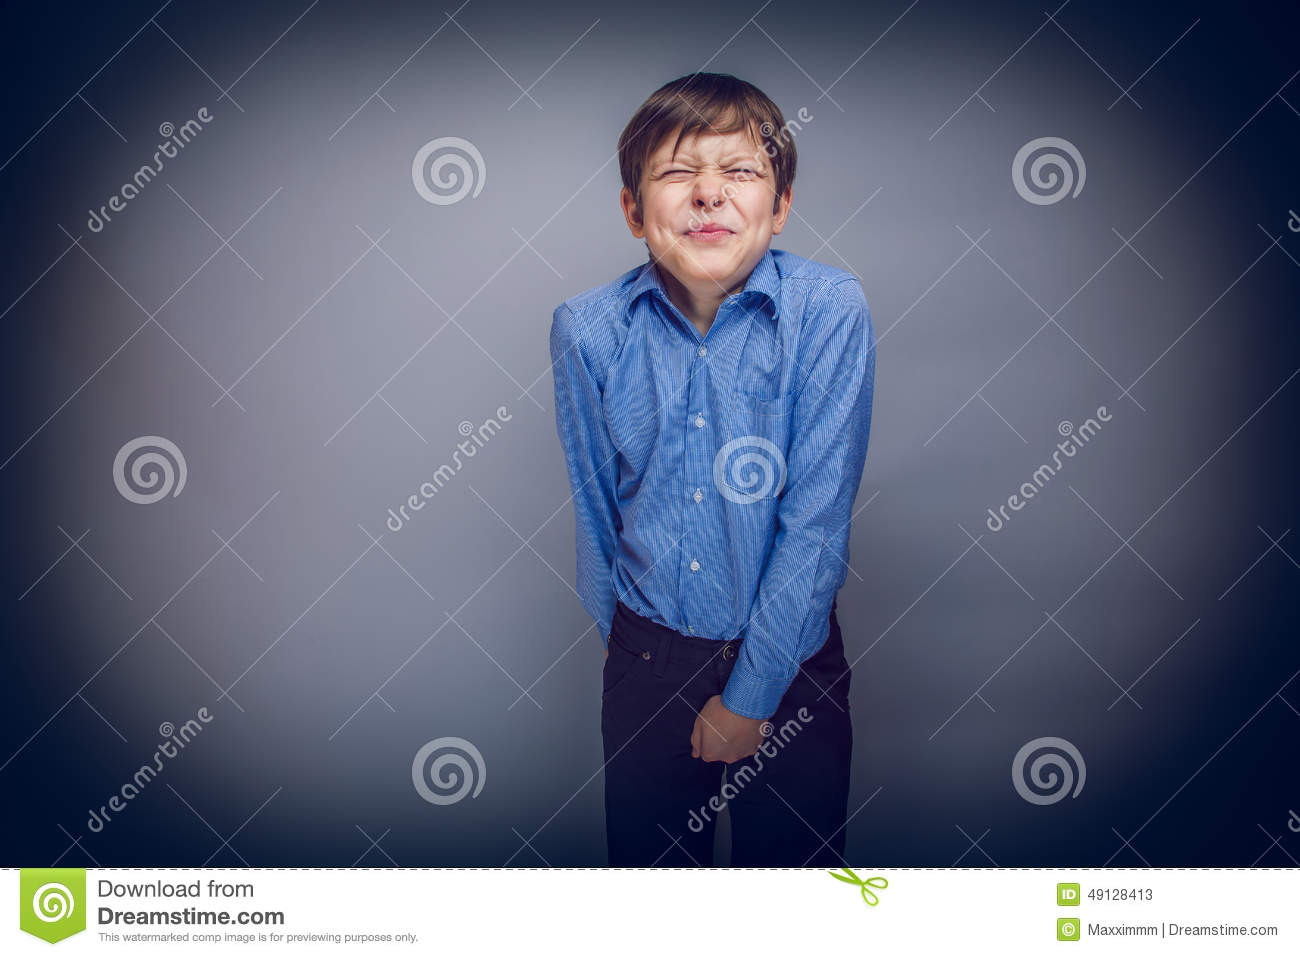 Teenager Boy 10 Years Of European Appearance Stock Photo